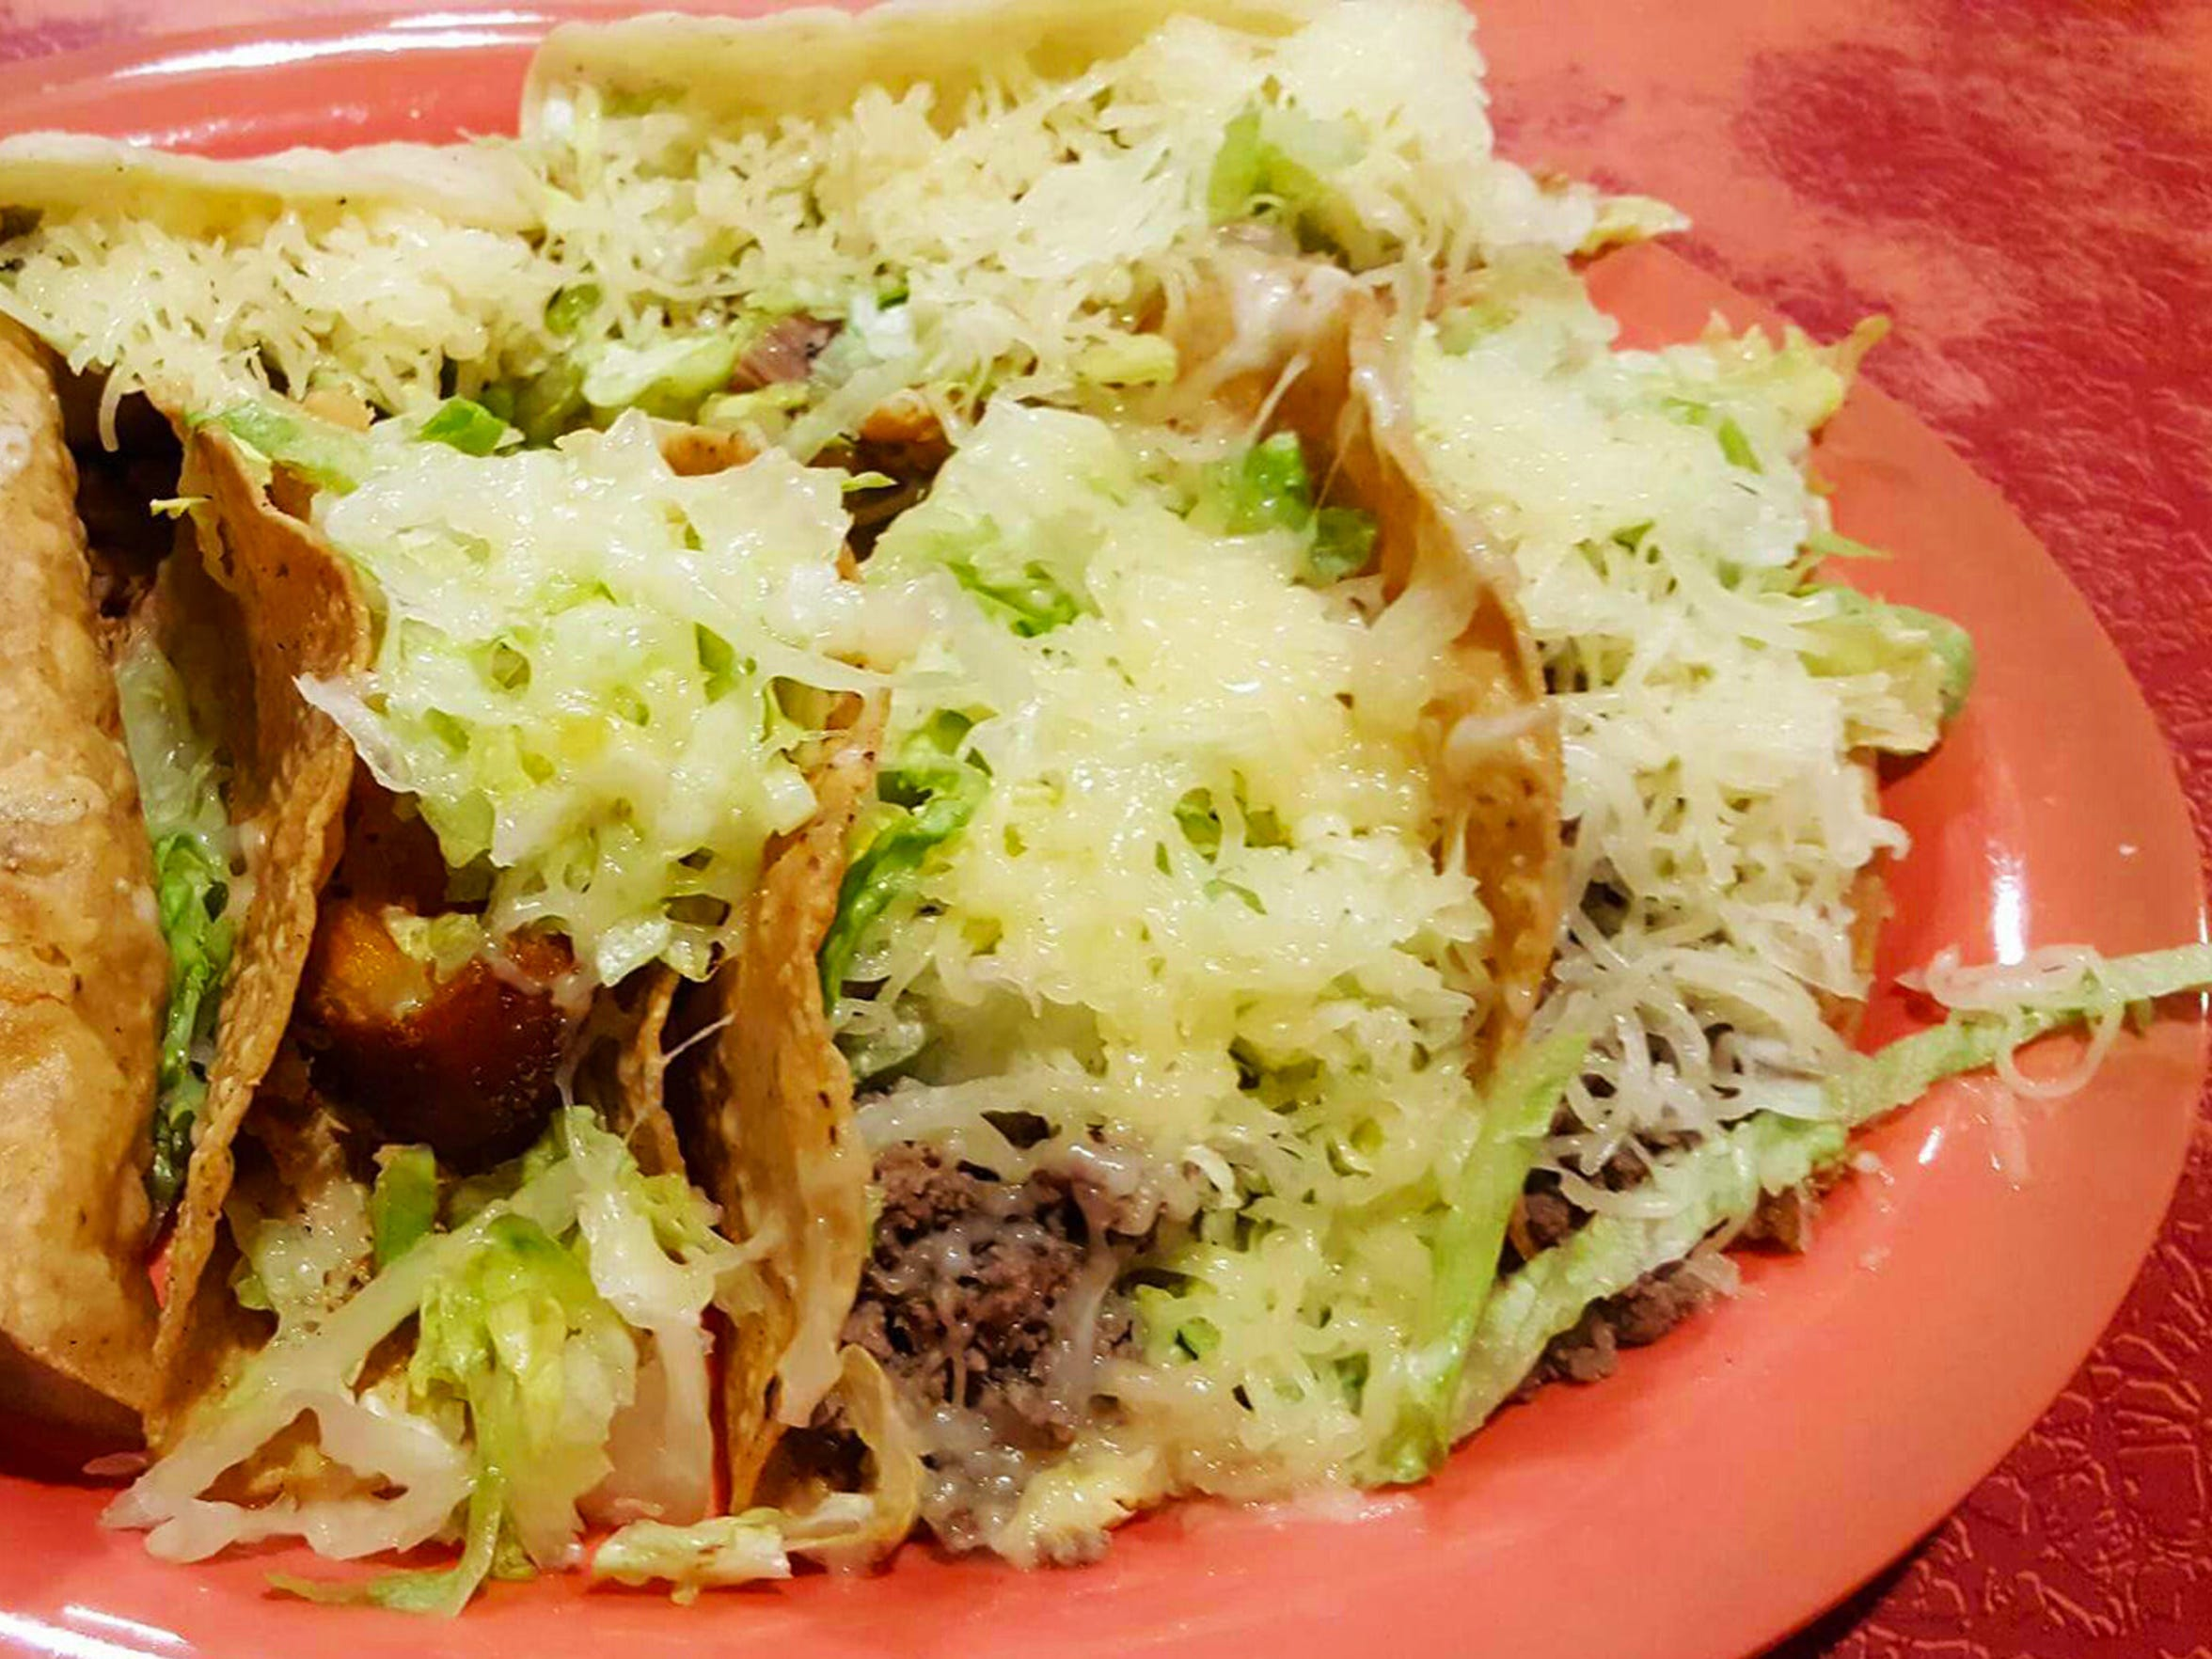 Chope's Bar and Café now has a Taco Tuesday with a choice of chicken or ground beef, soft or crispy, for $1 each.